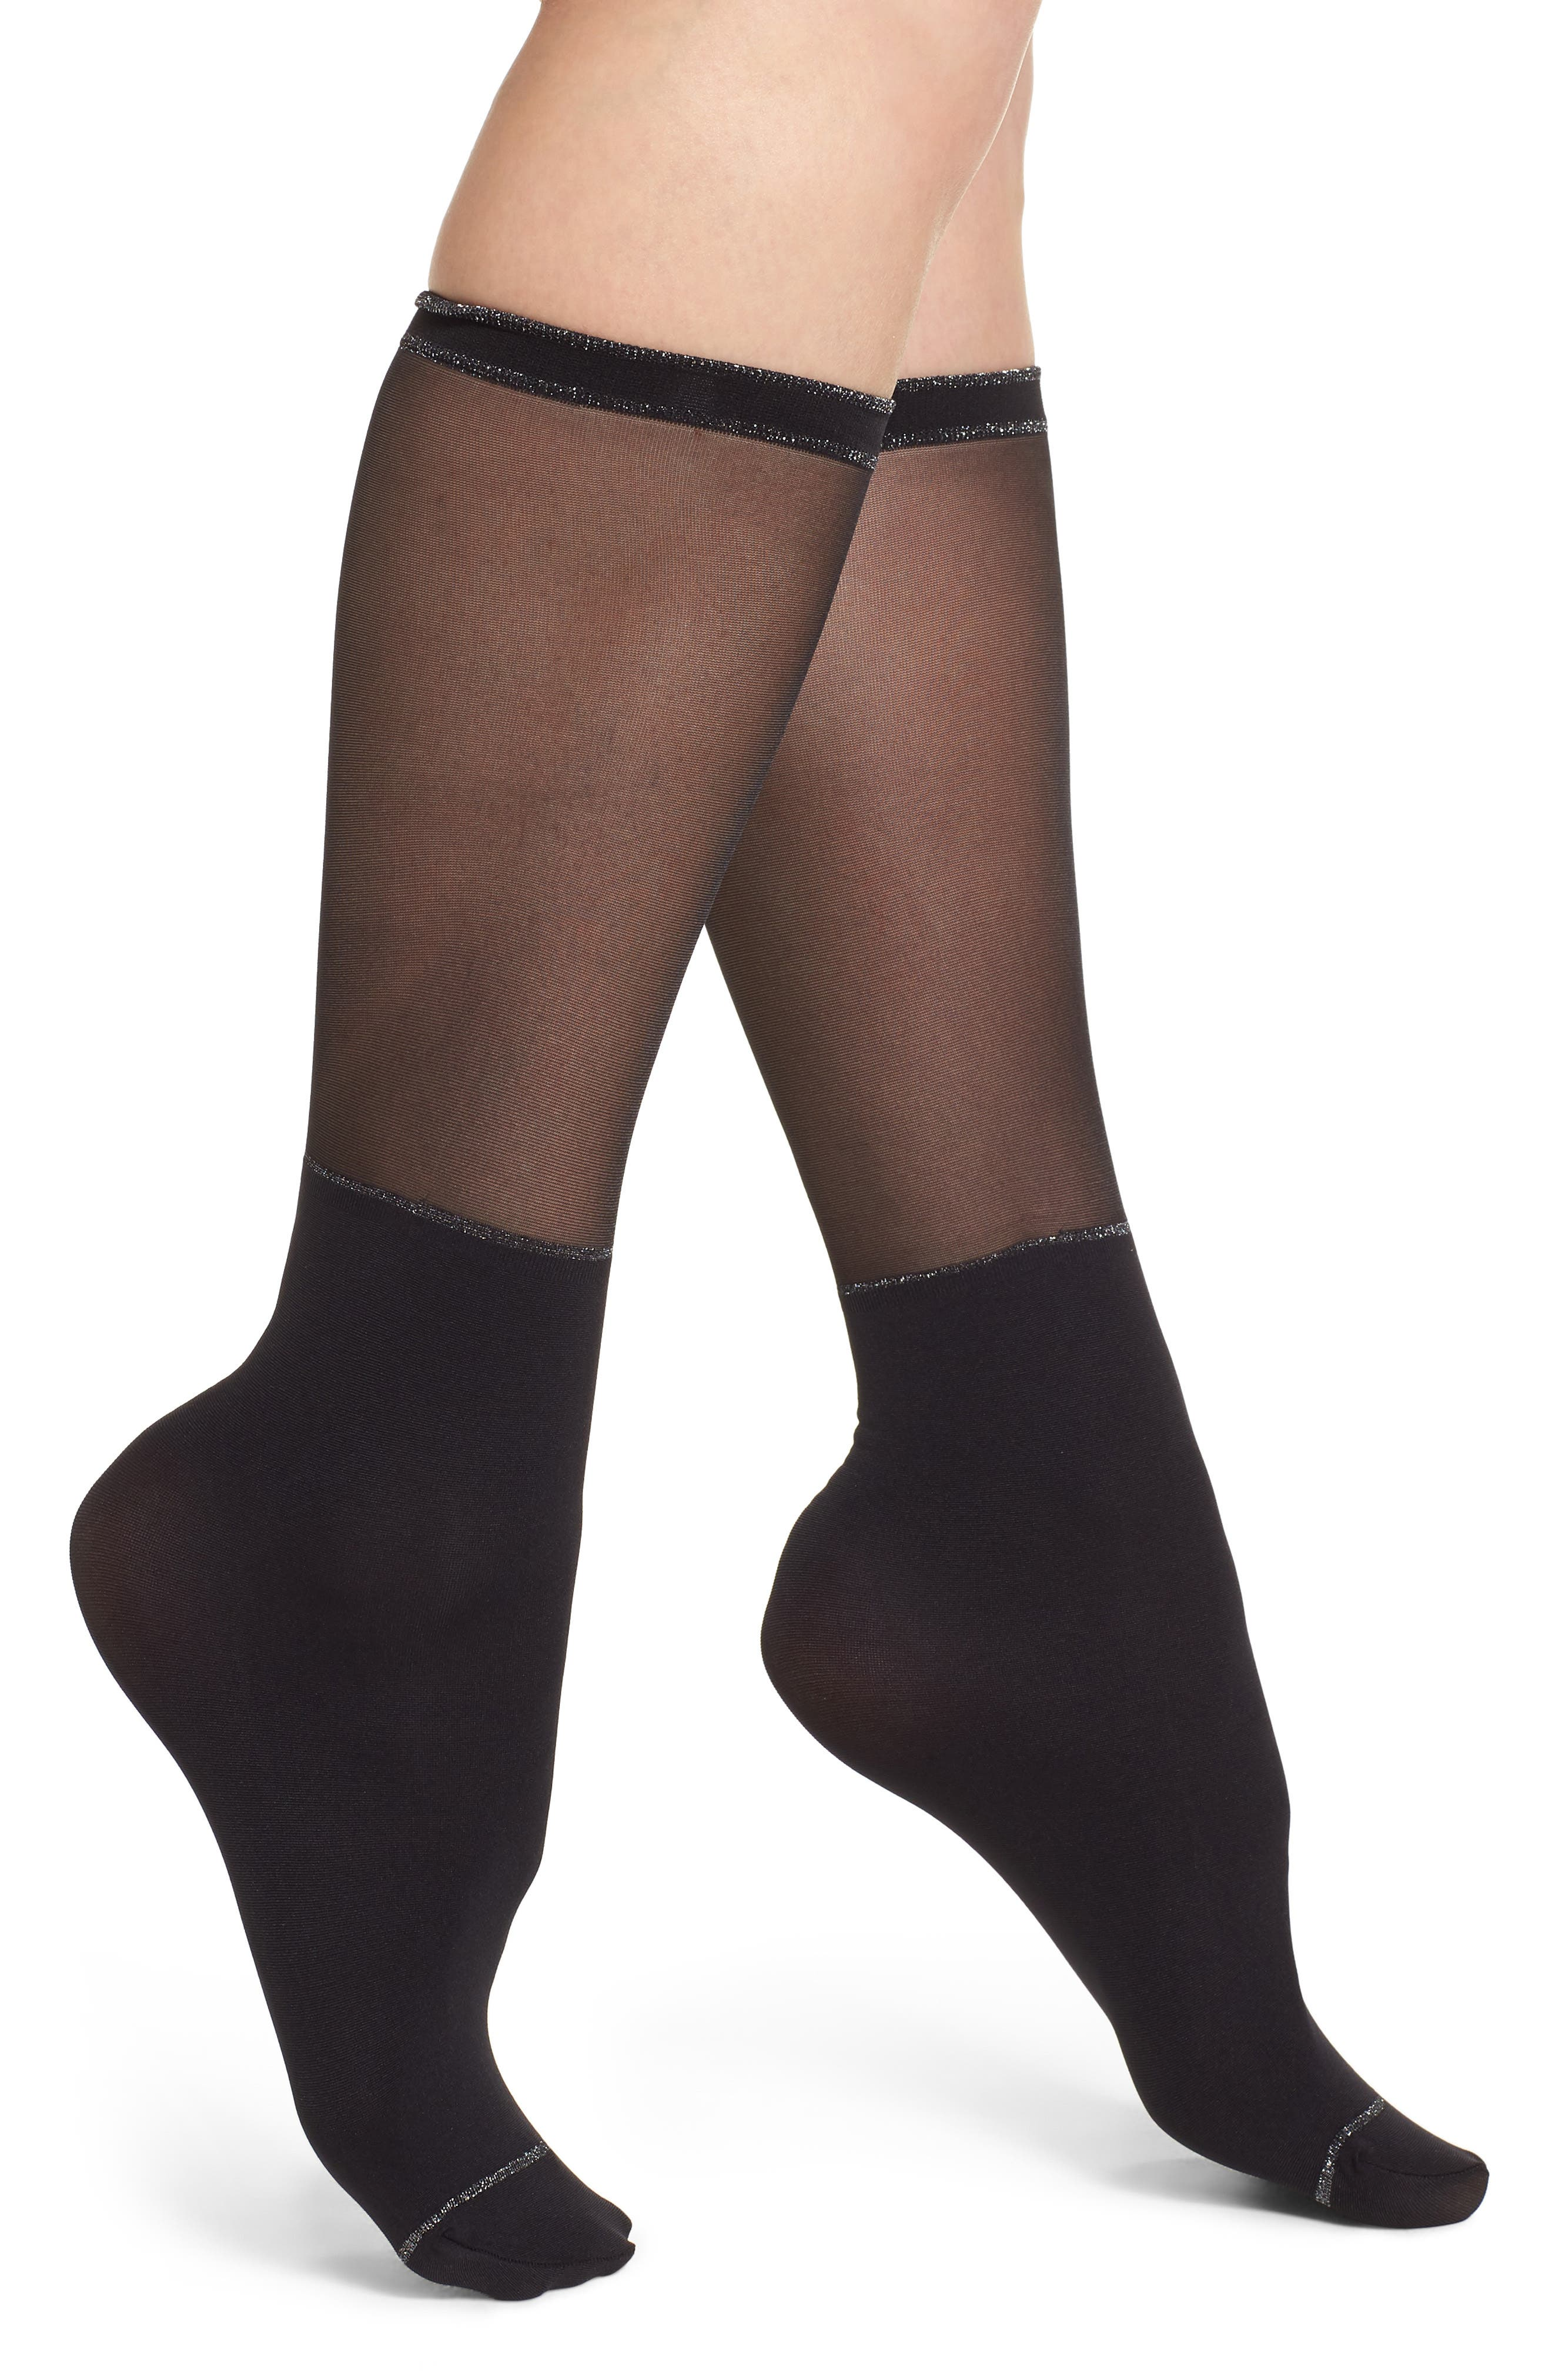 Gambaletto Graphic Glossy Trouser Socks,                         Main,                         color, Black